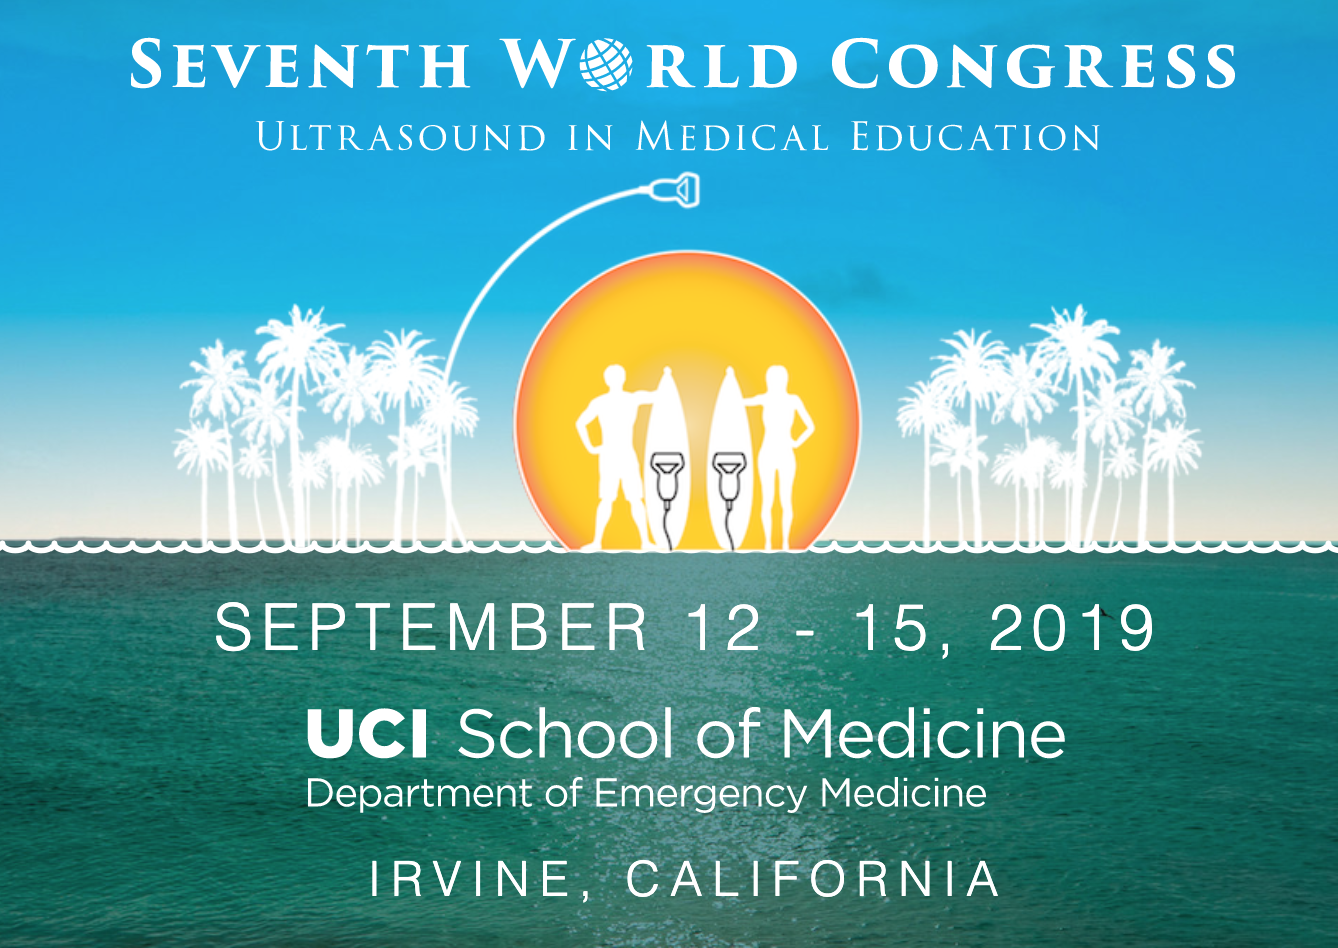 Volunteers Needed for 7th Annual World Congress Ultrasound